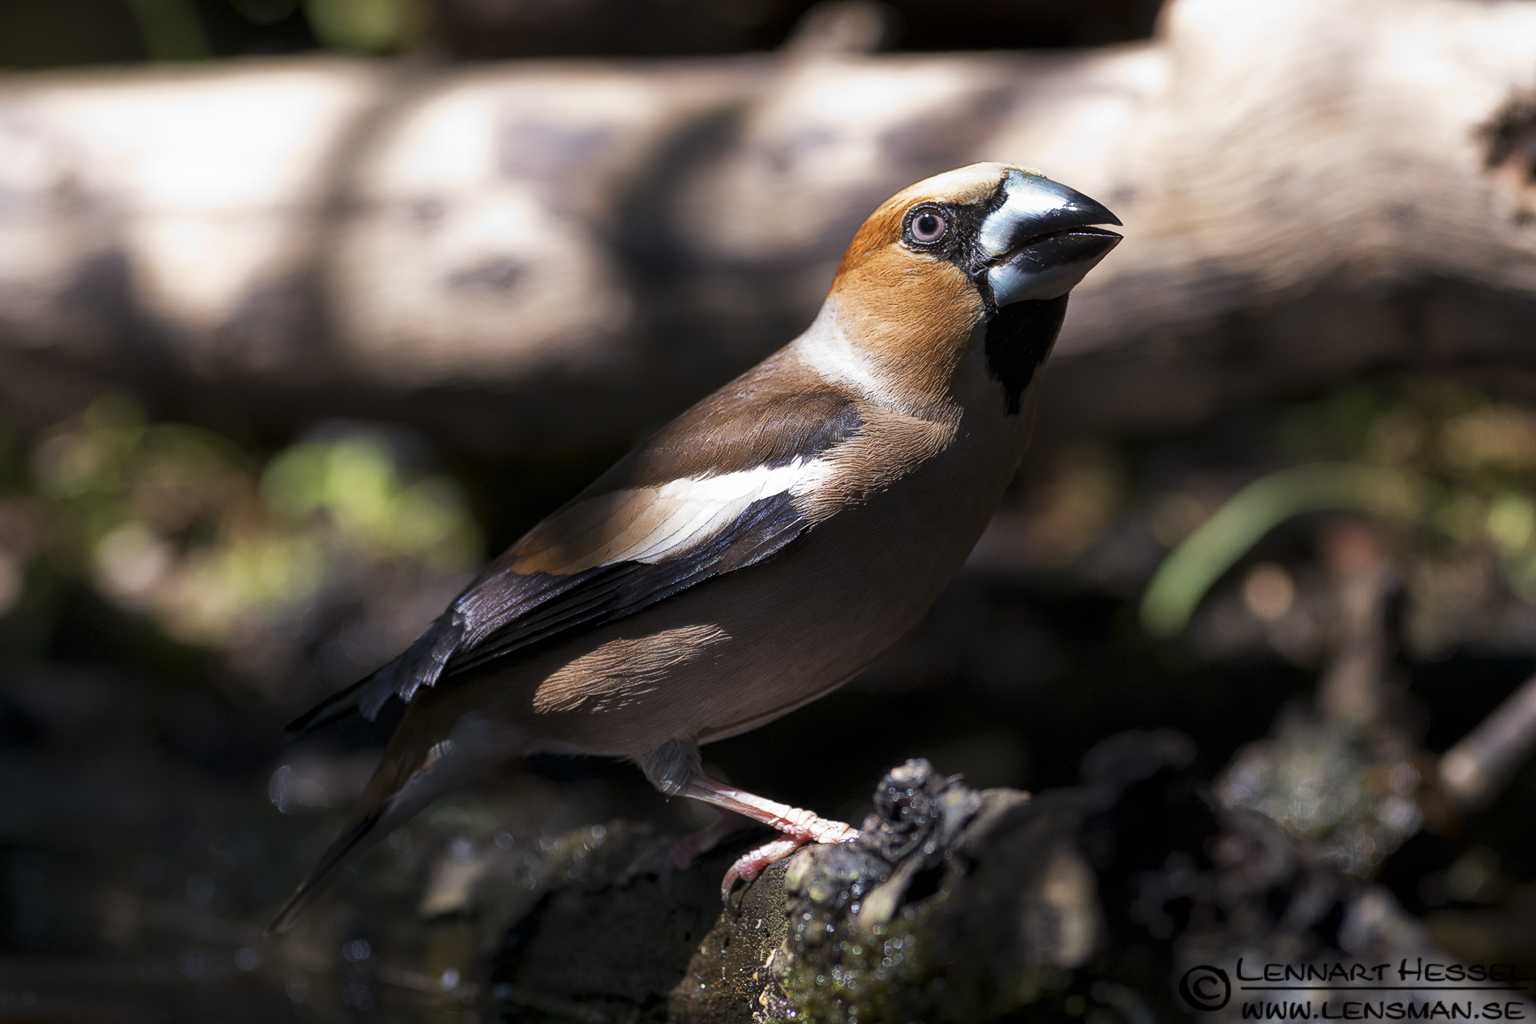 Hawfinch in Hungary